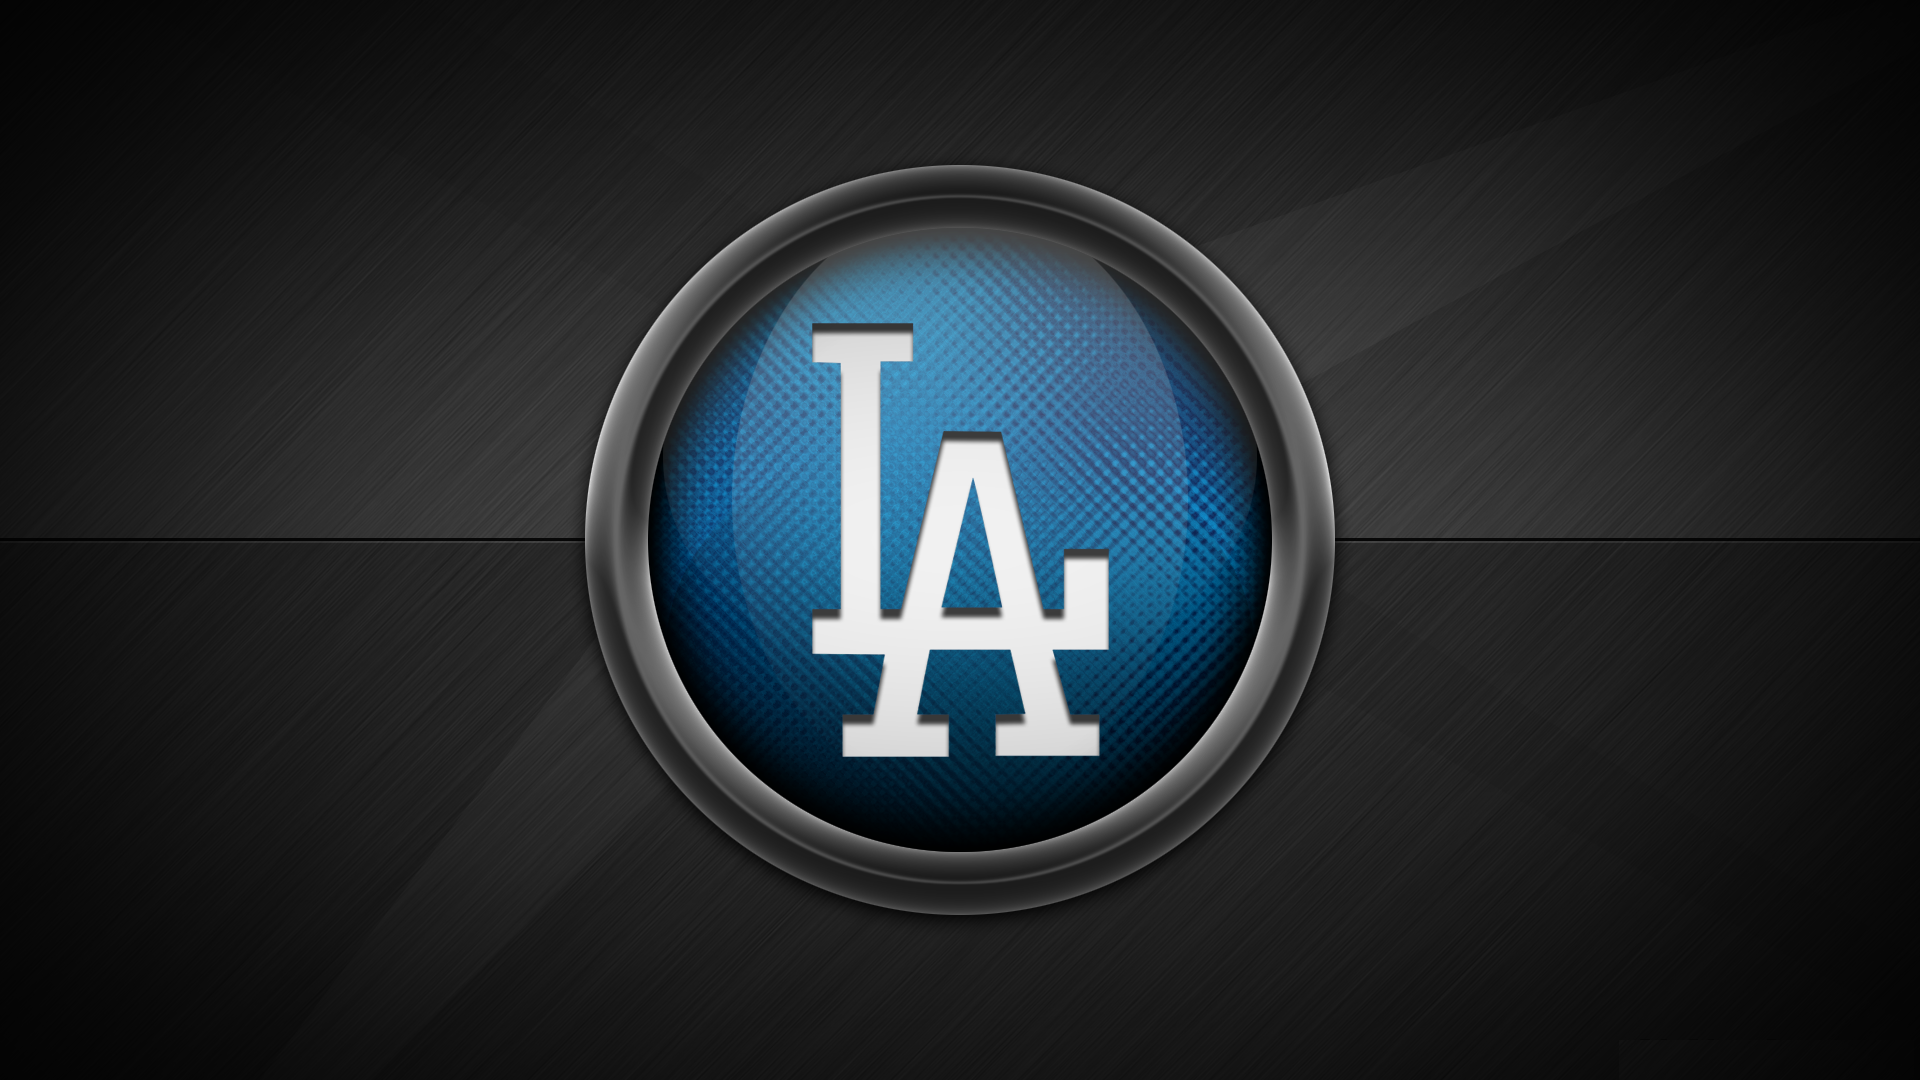 Top Dodger Wallpapers, #NZPNZP-32